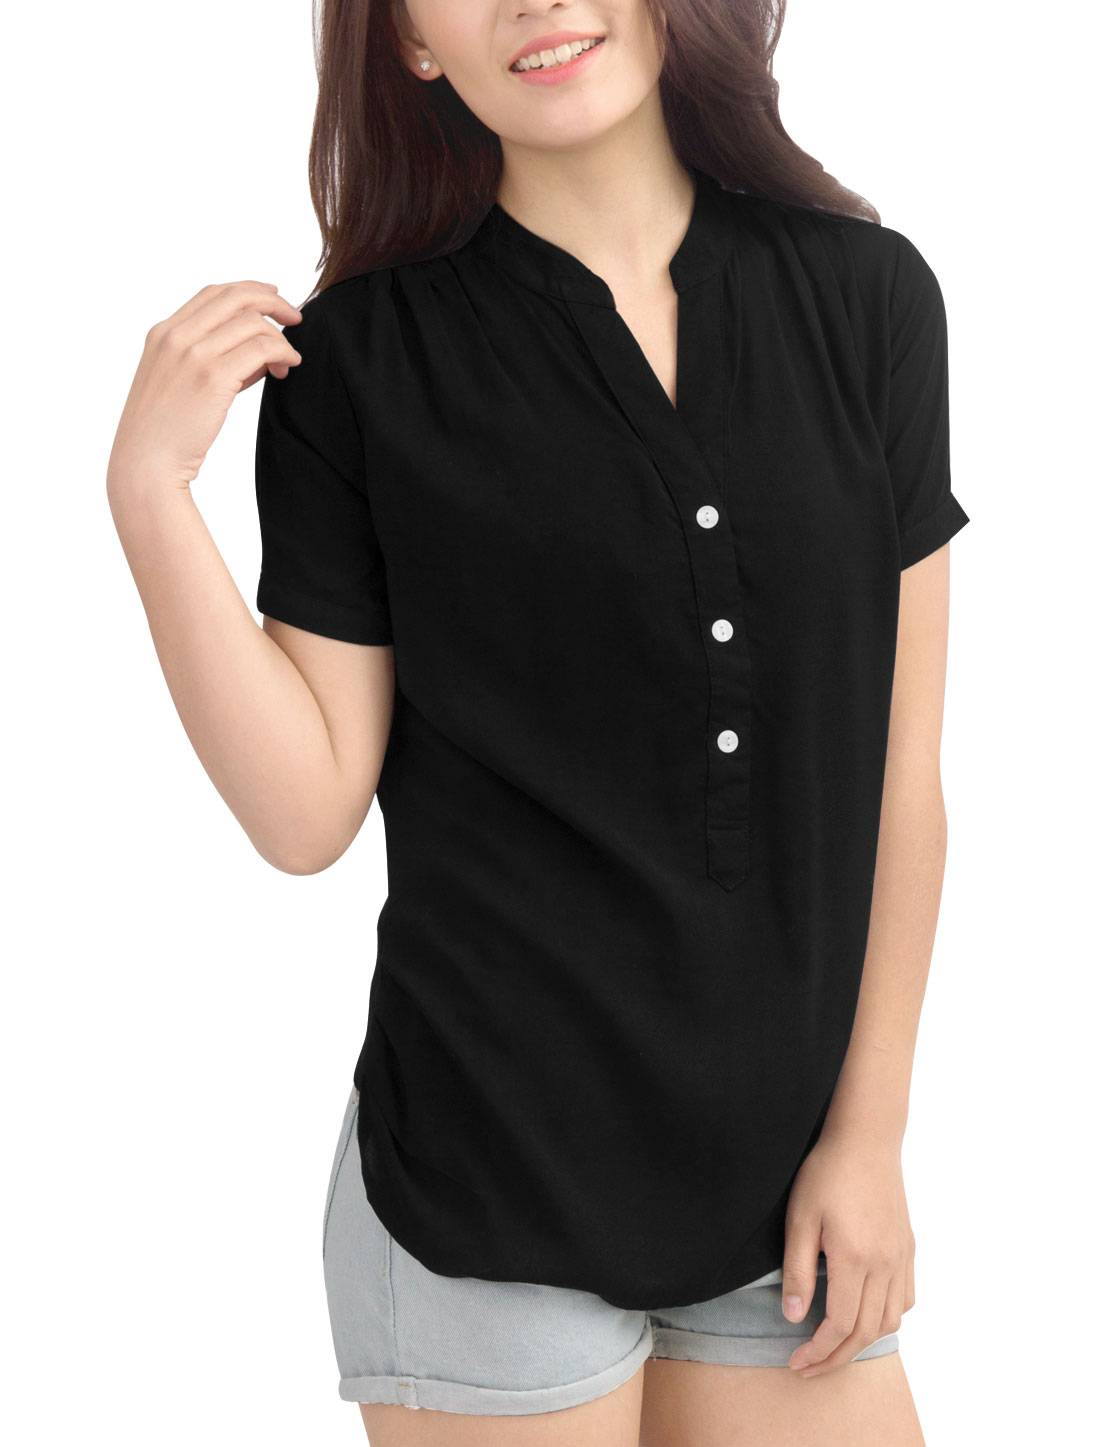 Women Ruched Side Gathered Detail Back V Neckline Chic Top Shirt Black XL